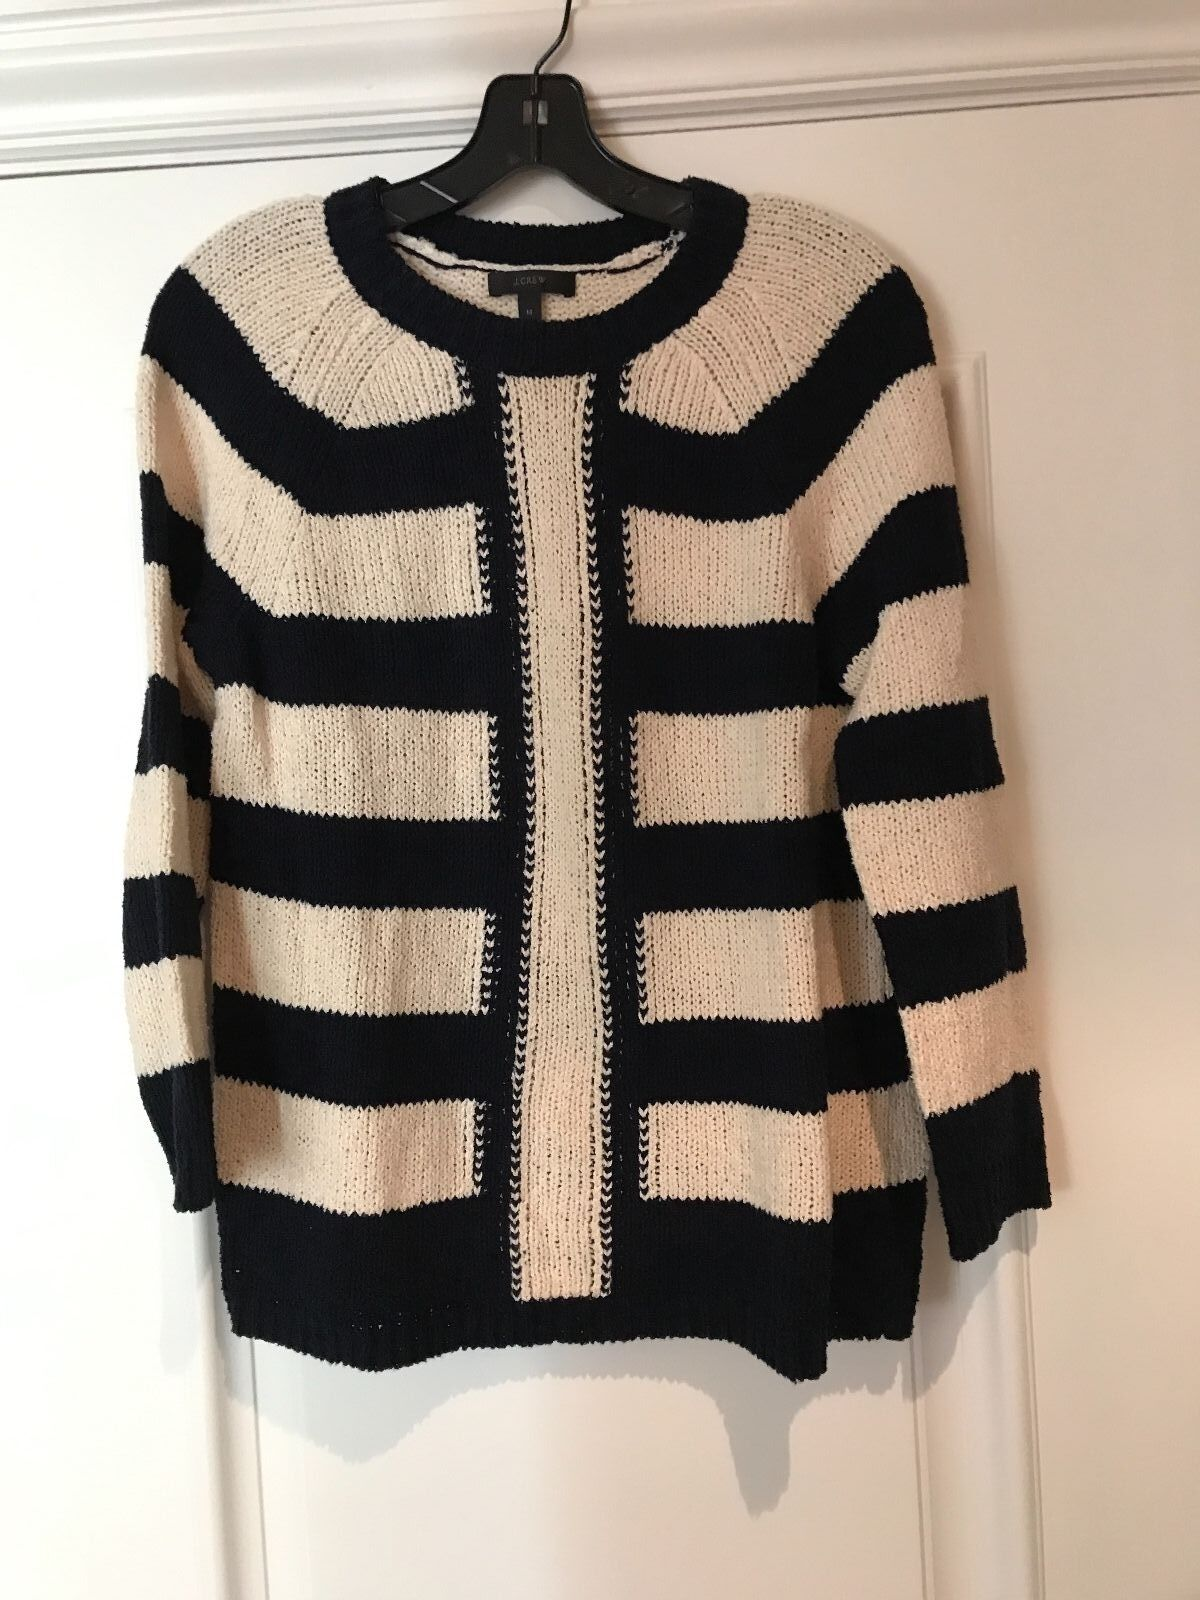 J.CREW Navy Ivory Chunky Knit Sweater M